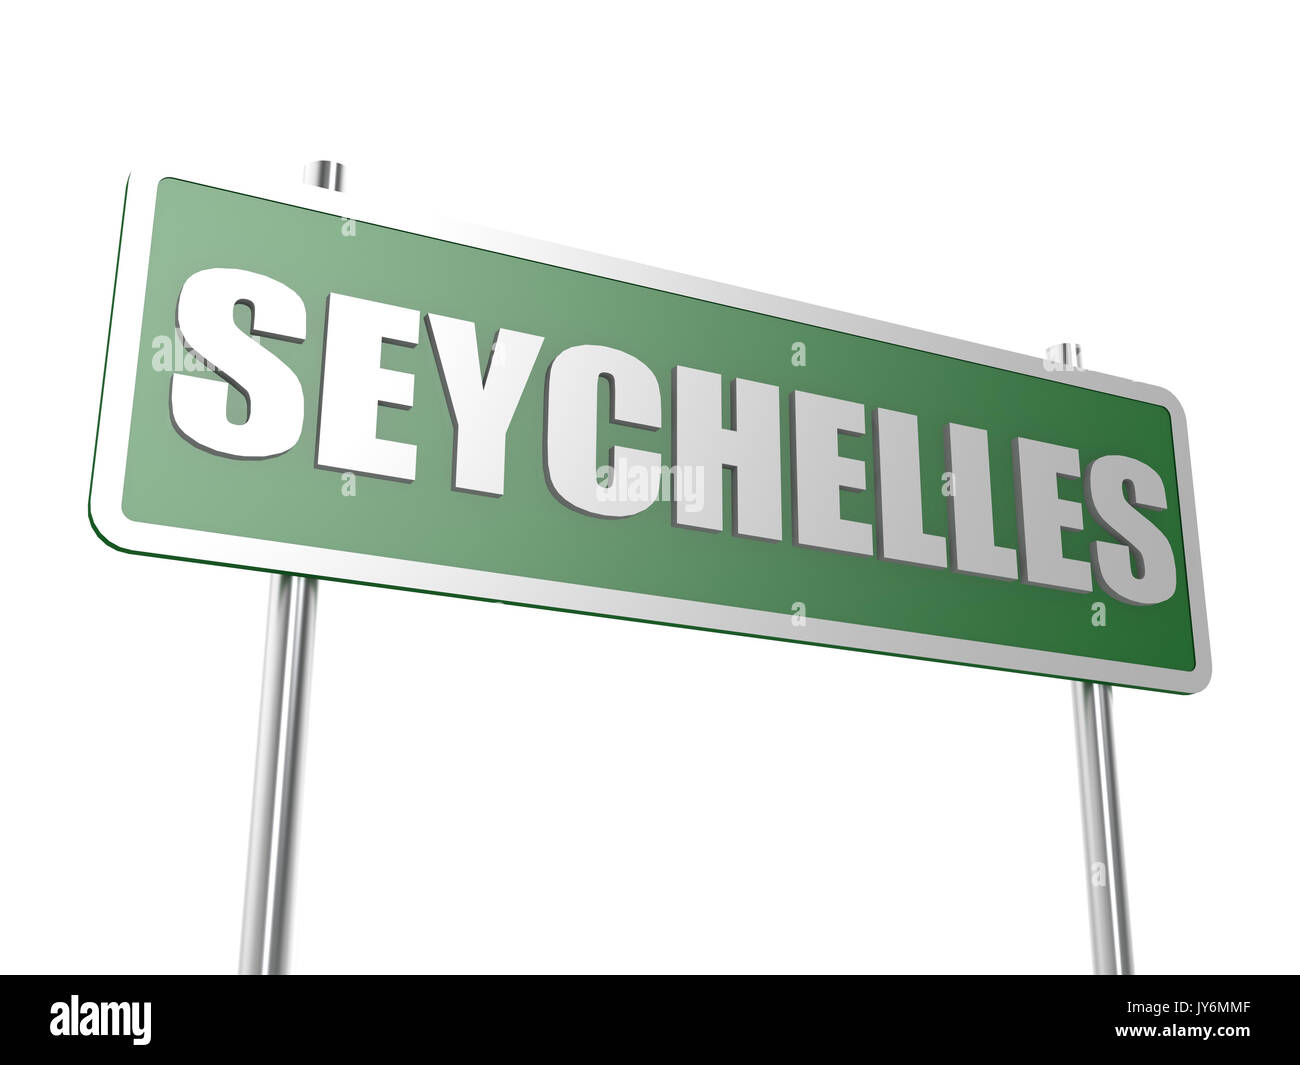 Seychelles image with hi-res rendered artwork that could be used for any graphic design. - Stock Image